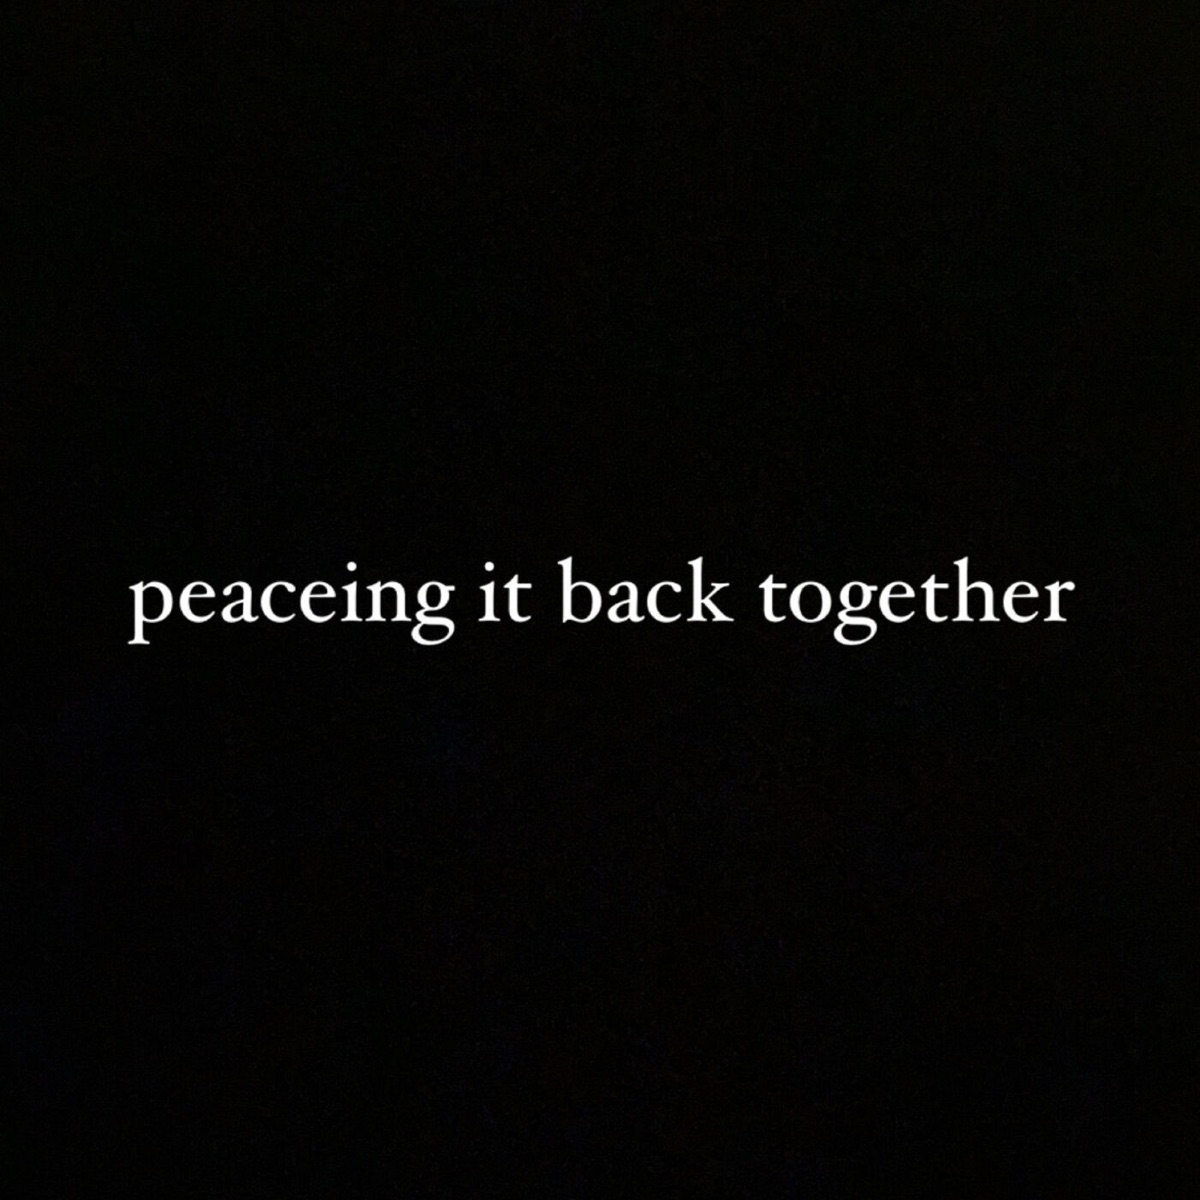 peaceing it back together